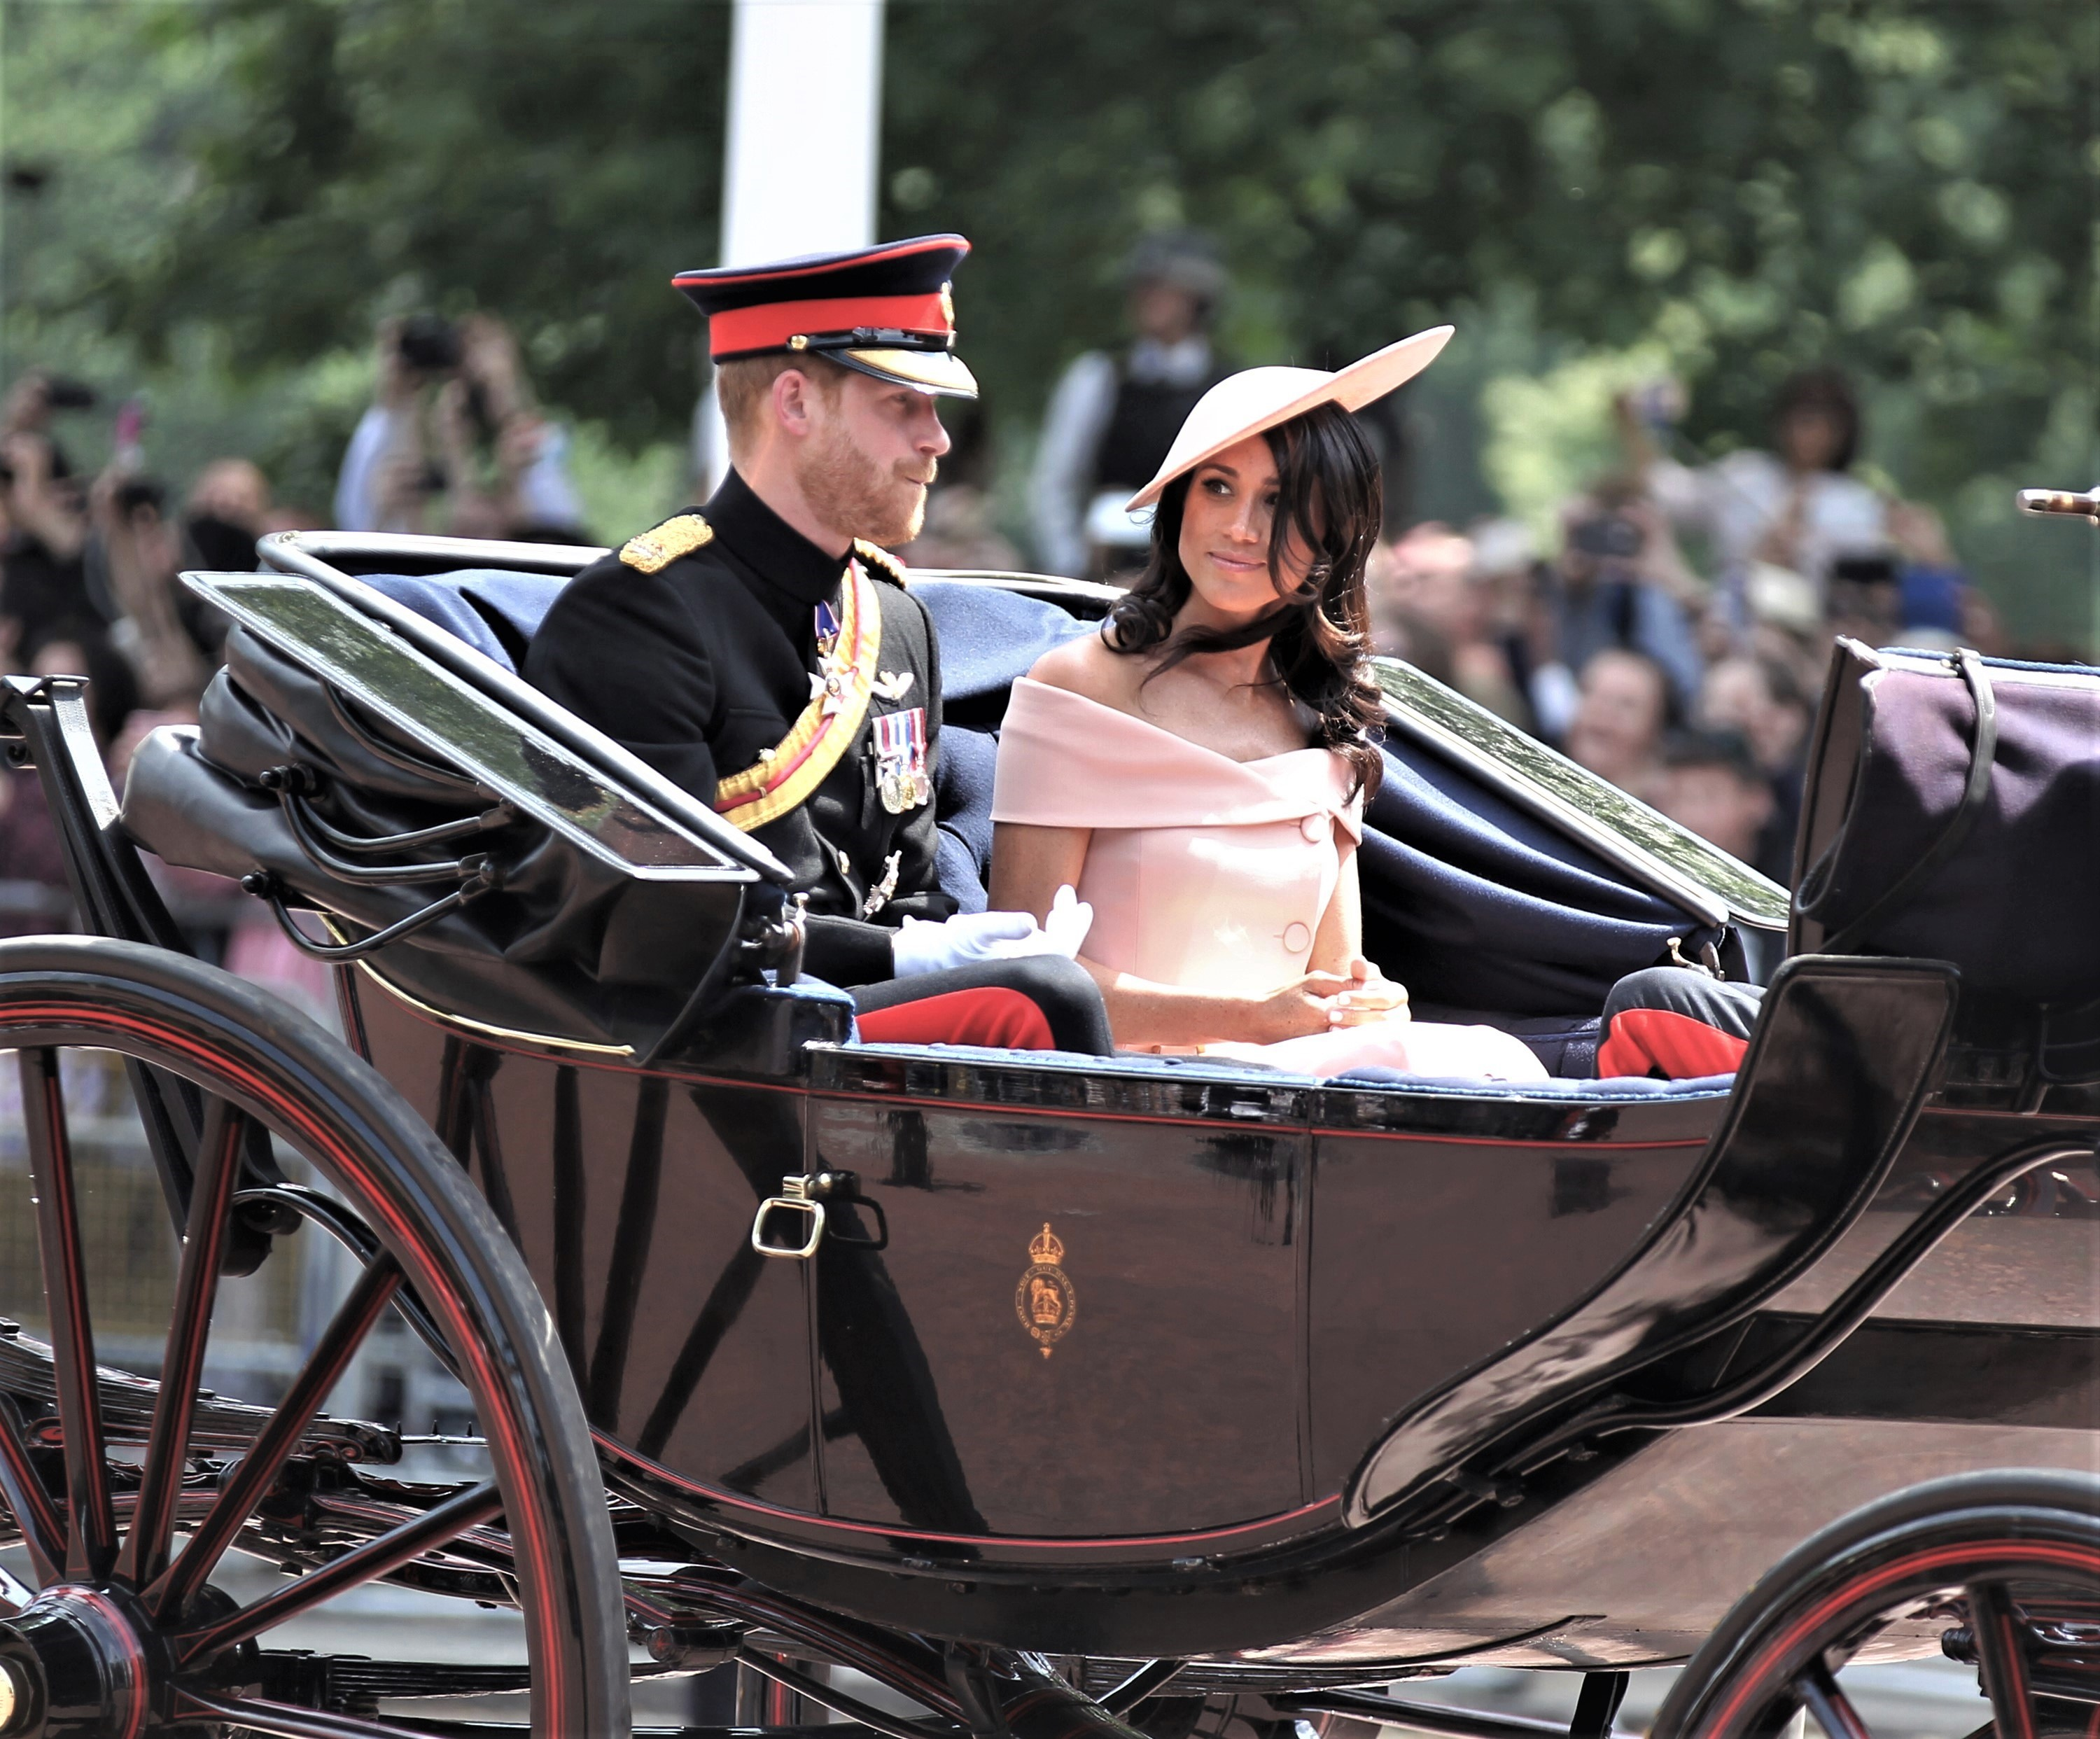 Prince Harry and Meghan Markle Ride In Carriage